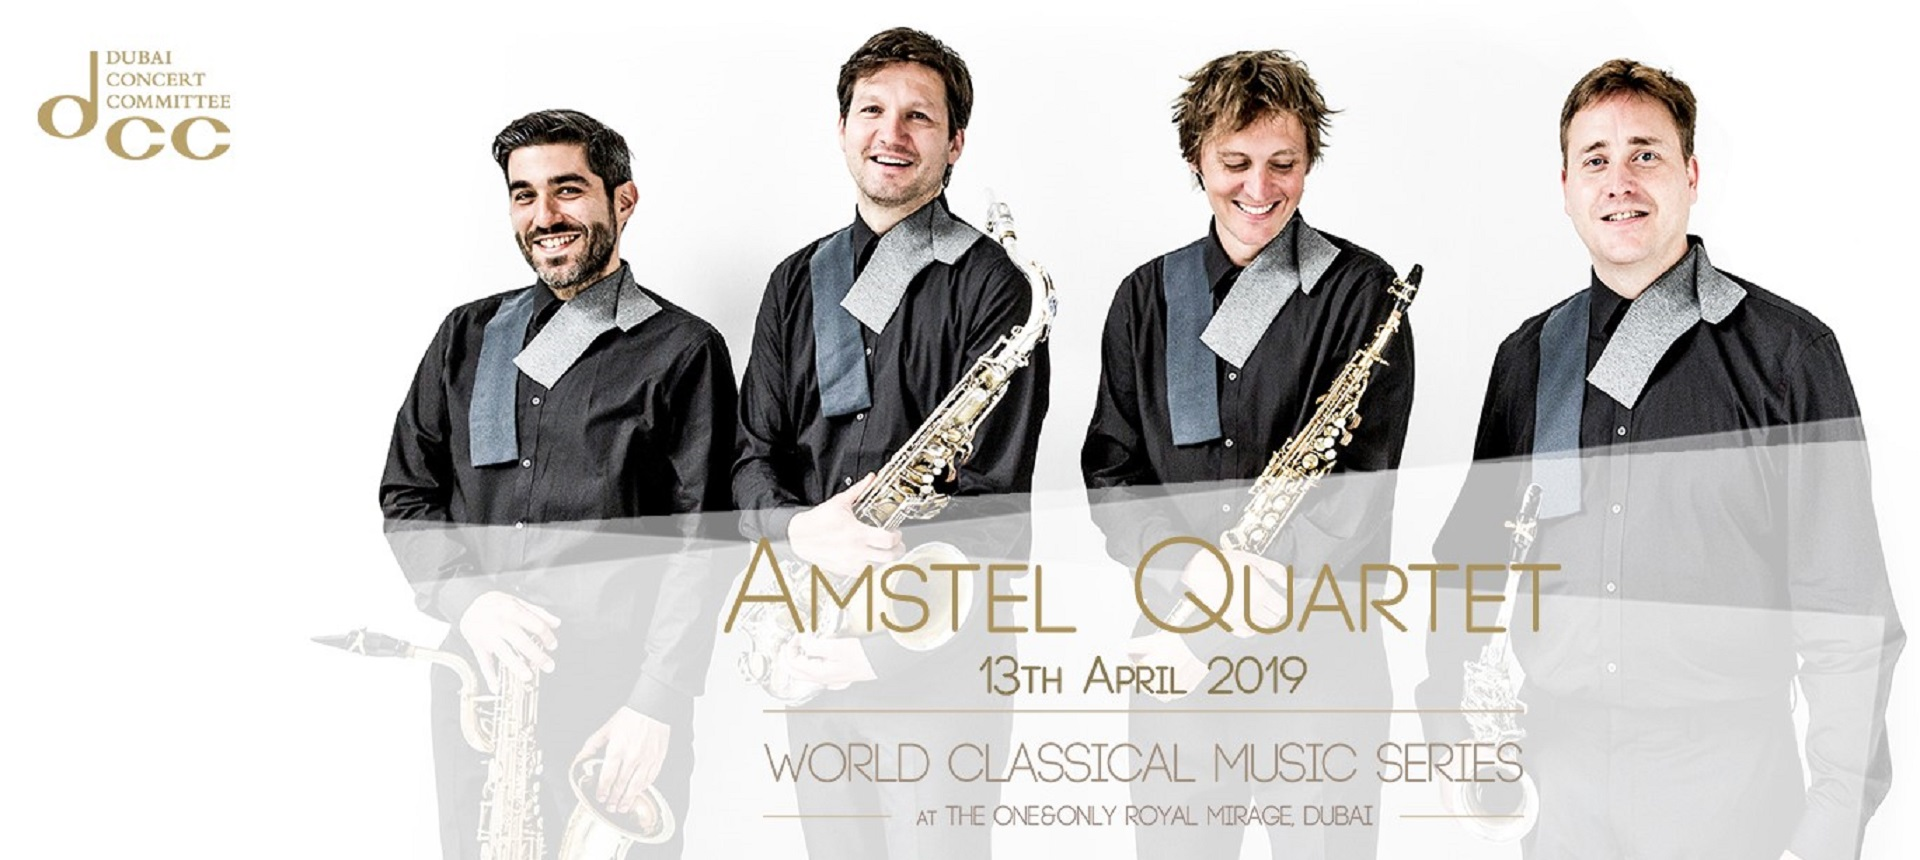 World Classical Music Series - AMSTEL QUARTET